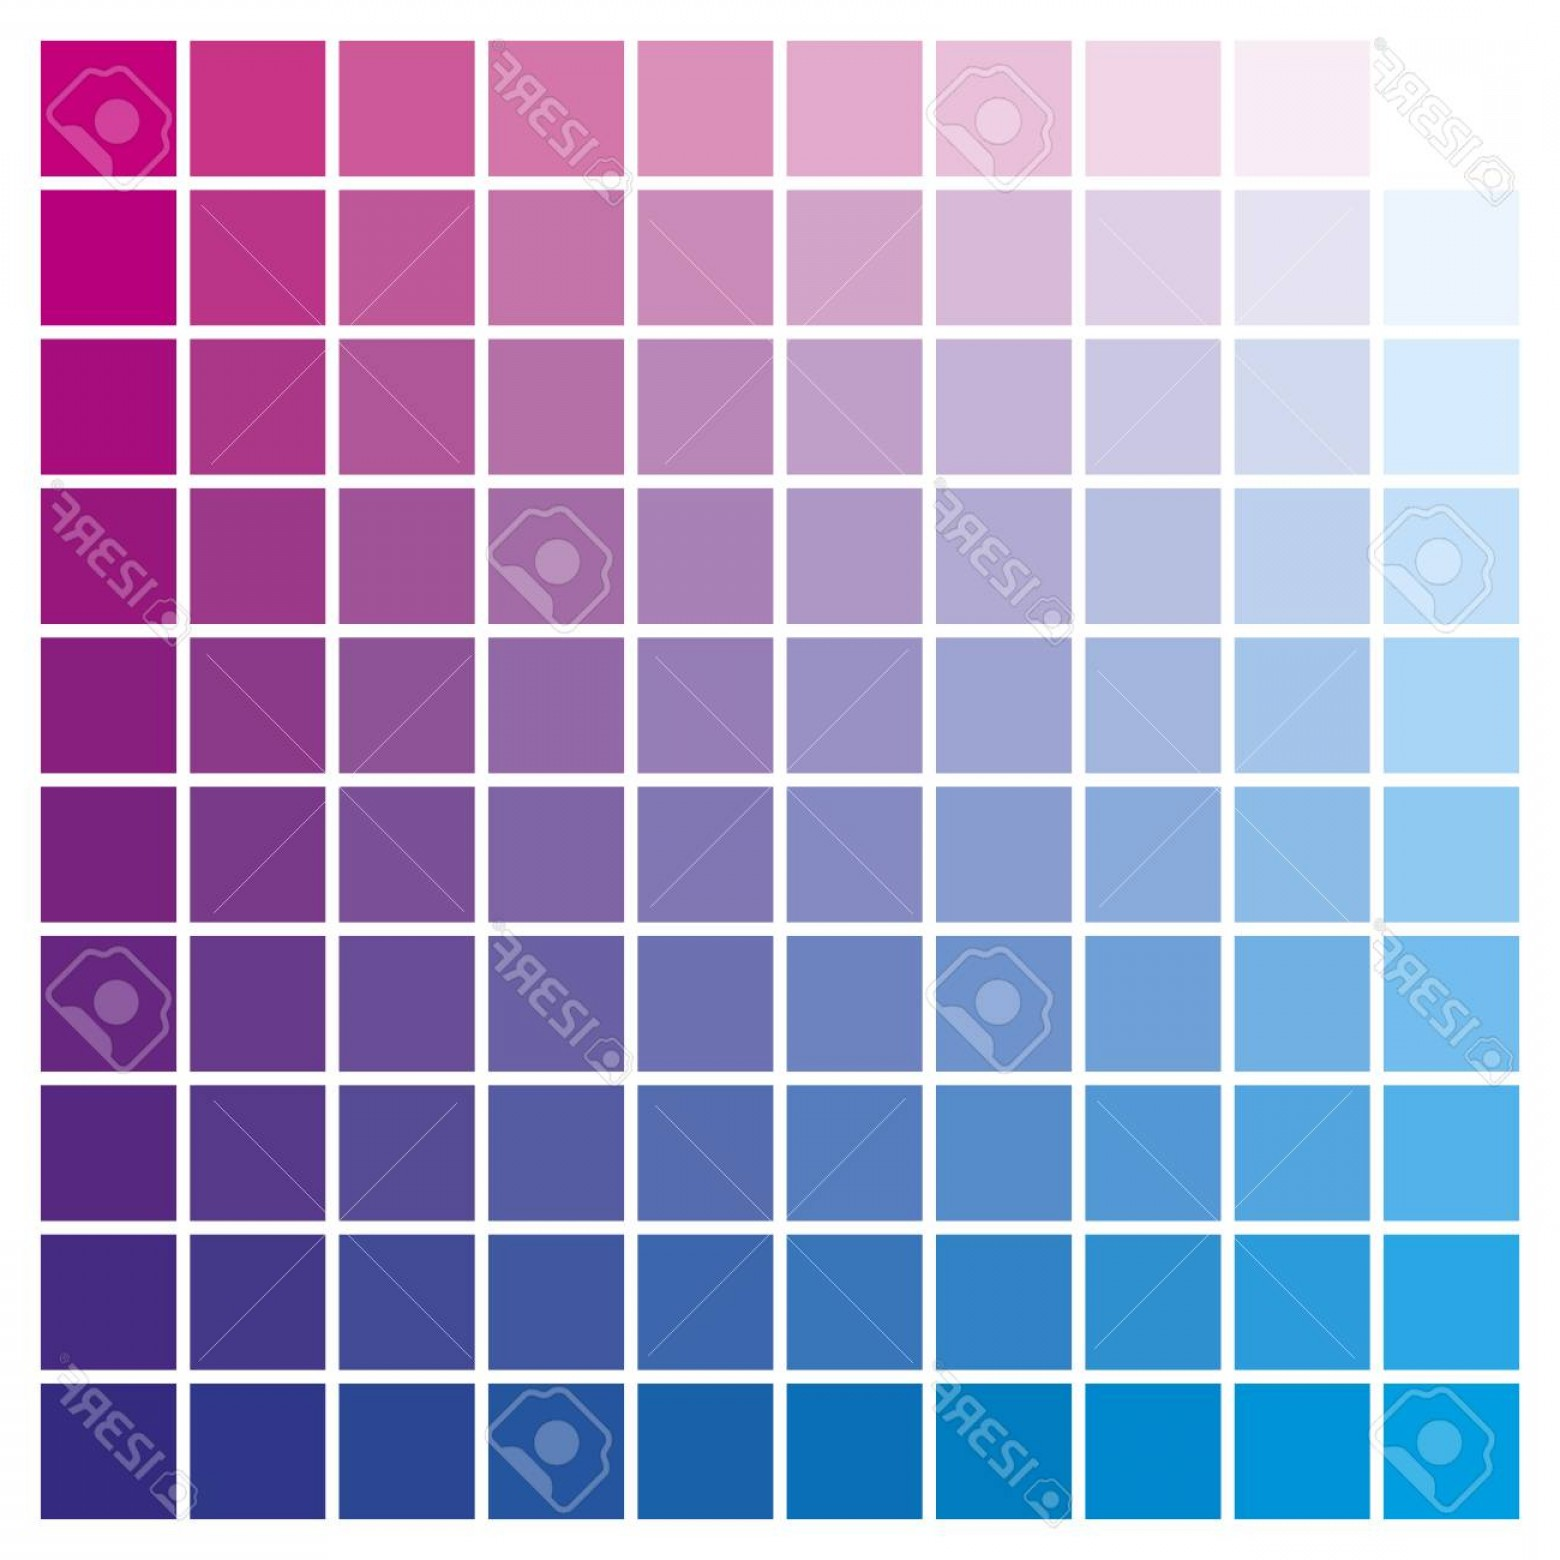 Color CMYK Chart Vector Free: Photostock Vector Cmyk Color Chart To Use In Prepress And Printing Used To Pick Color Swatches Cyan And Magenta Are Ba